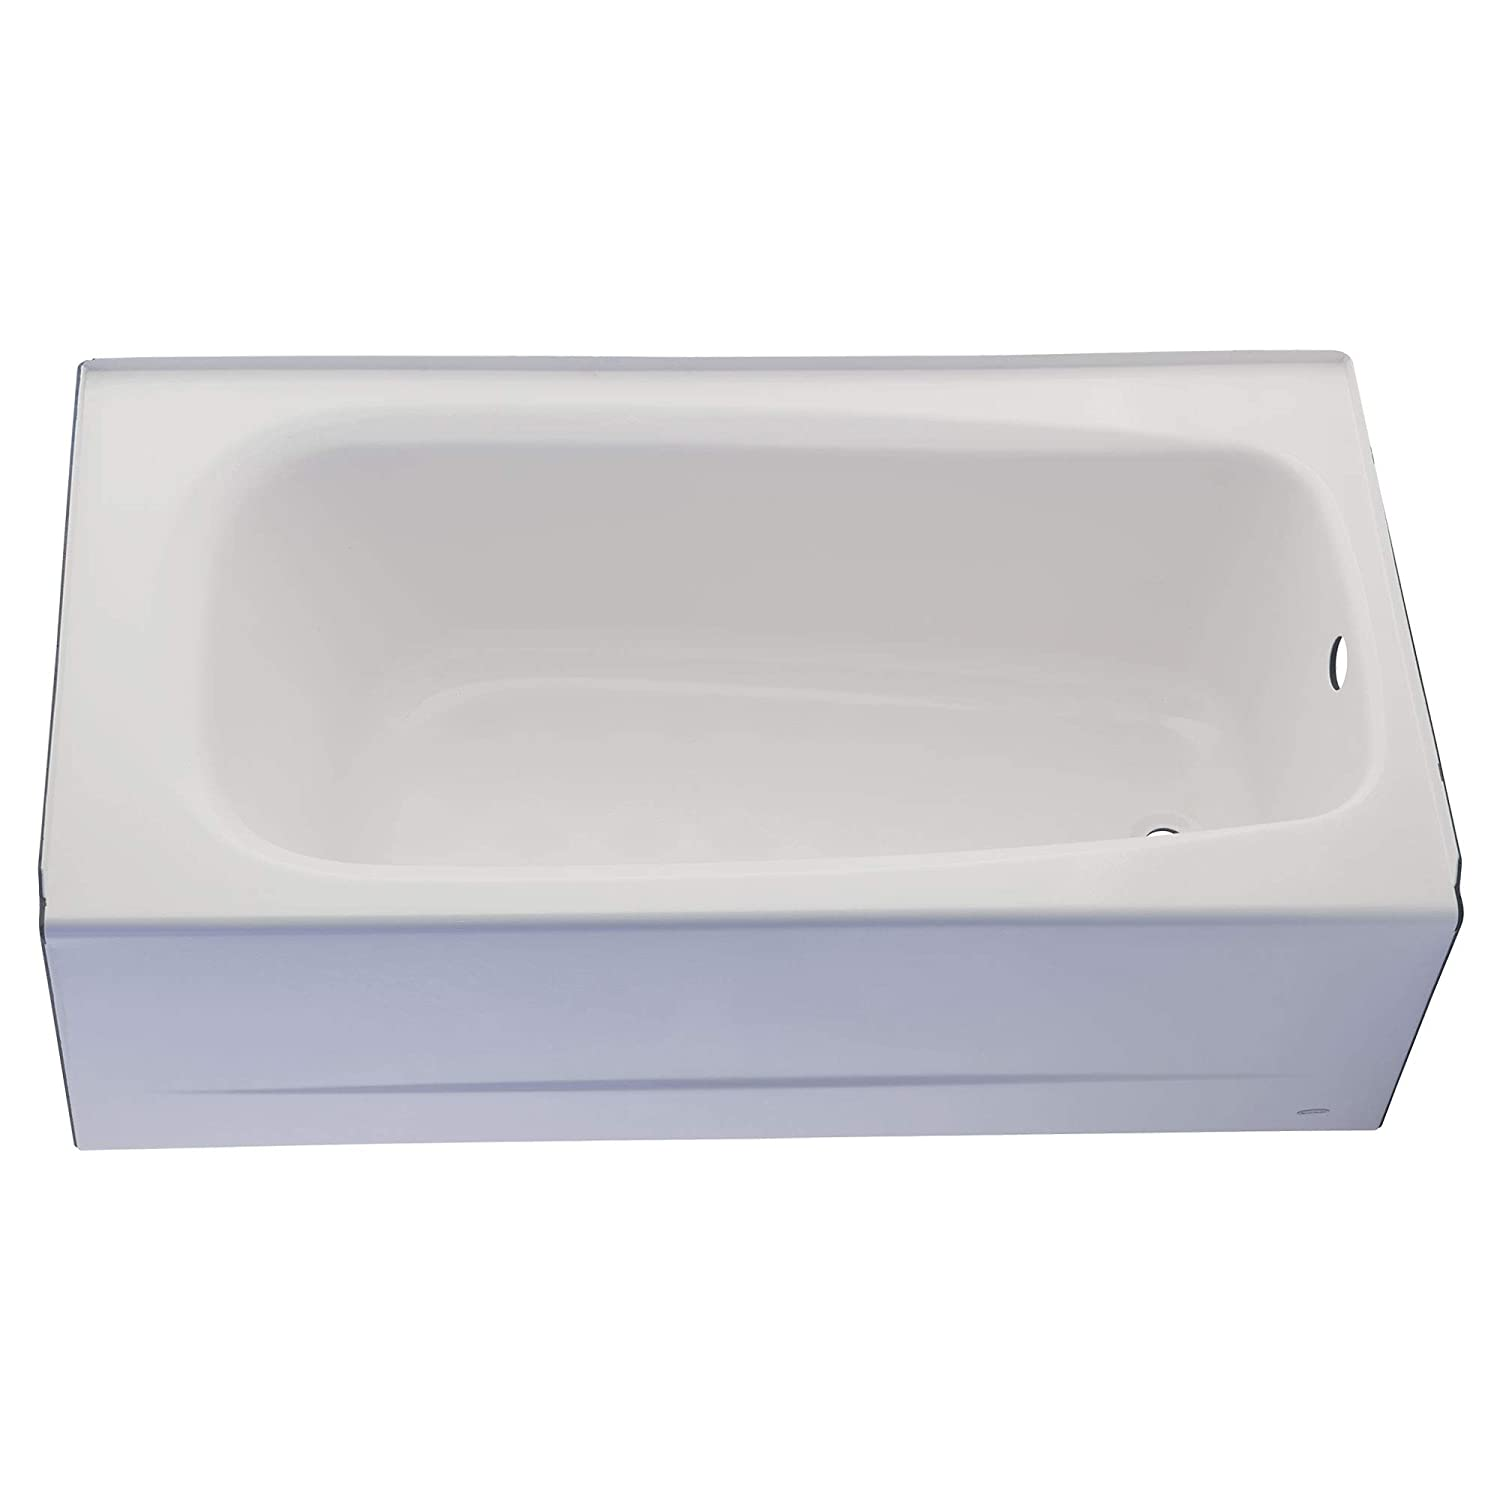 1. American Standard Cambridge Apron-Front Soaking Bathtub